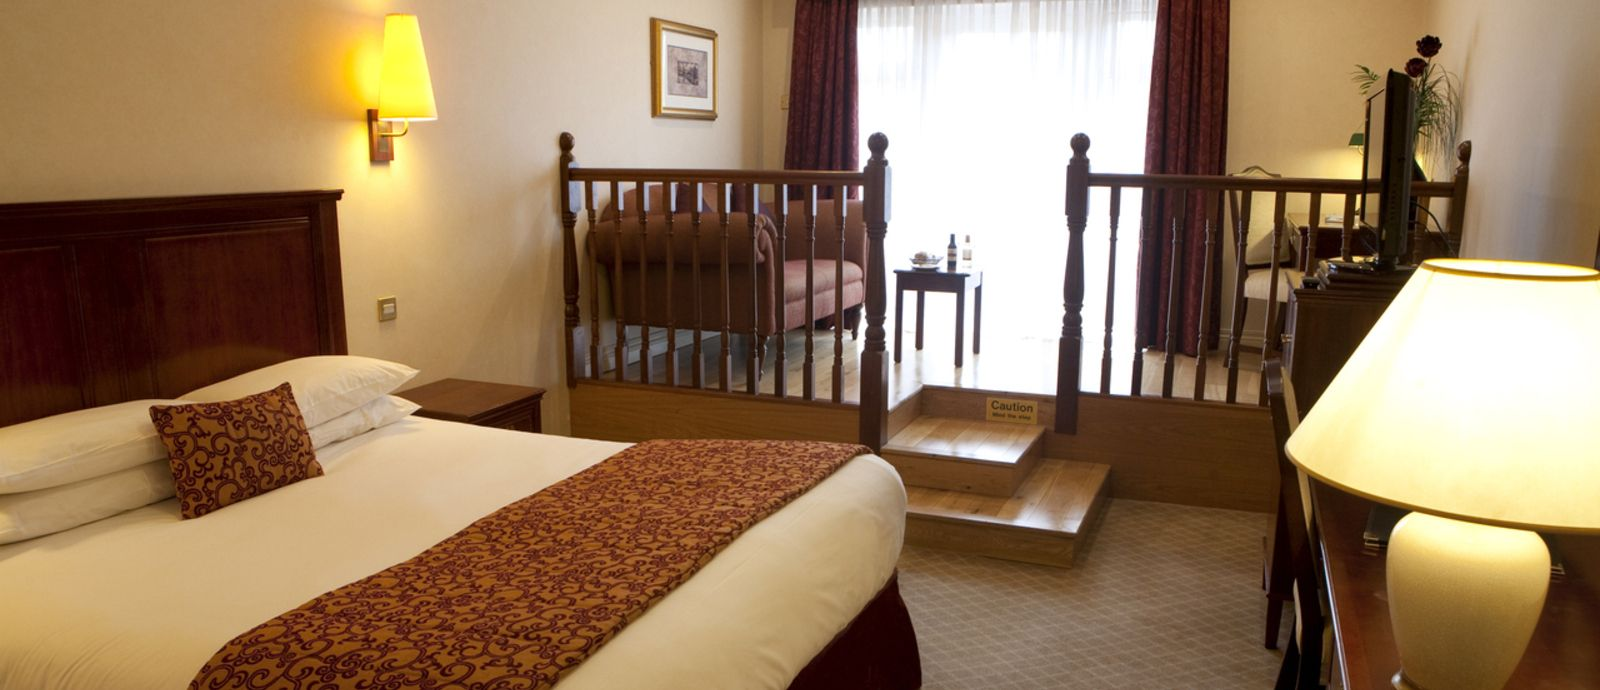 Luxury Hotel Leixlip